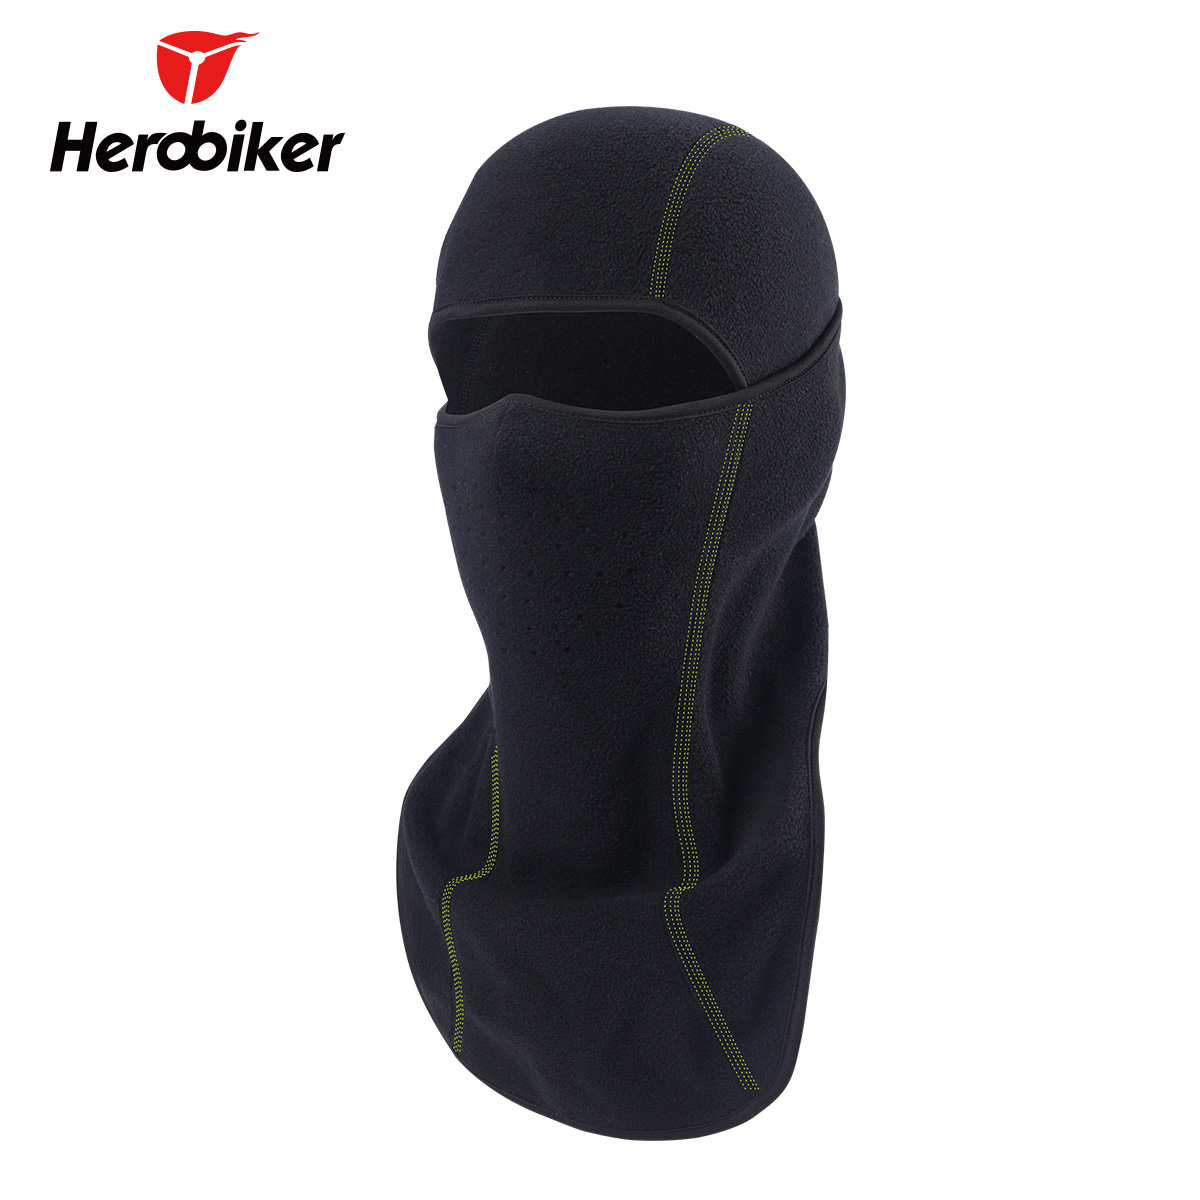 HEROBIKER Motorcycle Face Mask Shawl Autumn Winter Thermal Fleece Face Shield Mask Moto Balaclava Windproof Cycling Ski Scarf thermal fleece balaclava ski hat hood bike wind stopper face mask new caps neck warmer winter fleece motorcycle neck helmet cap